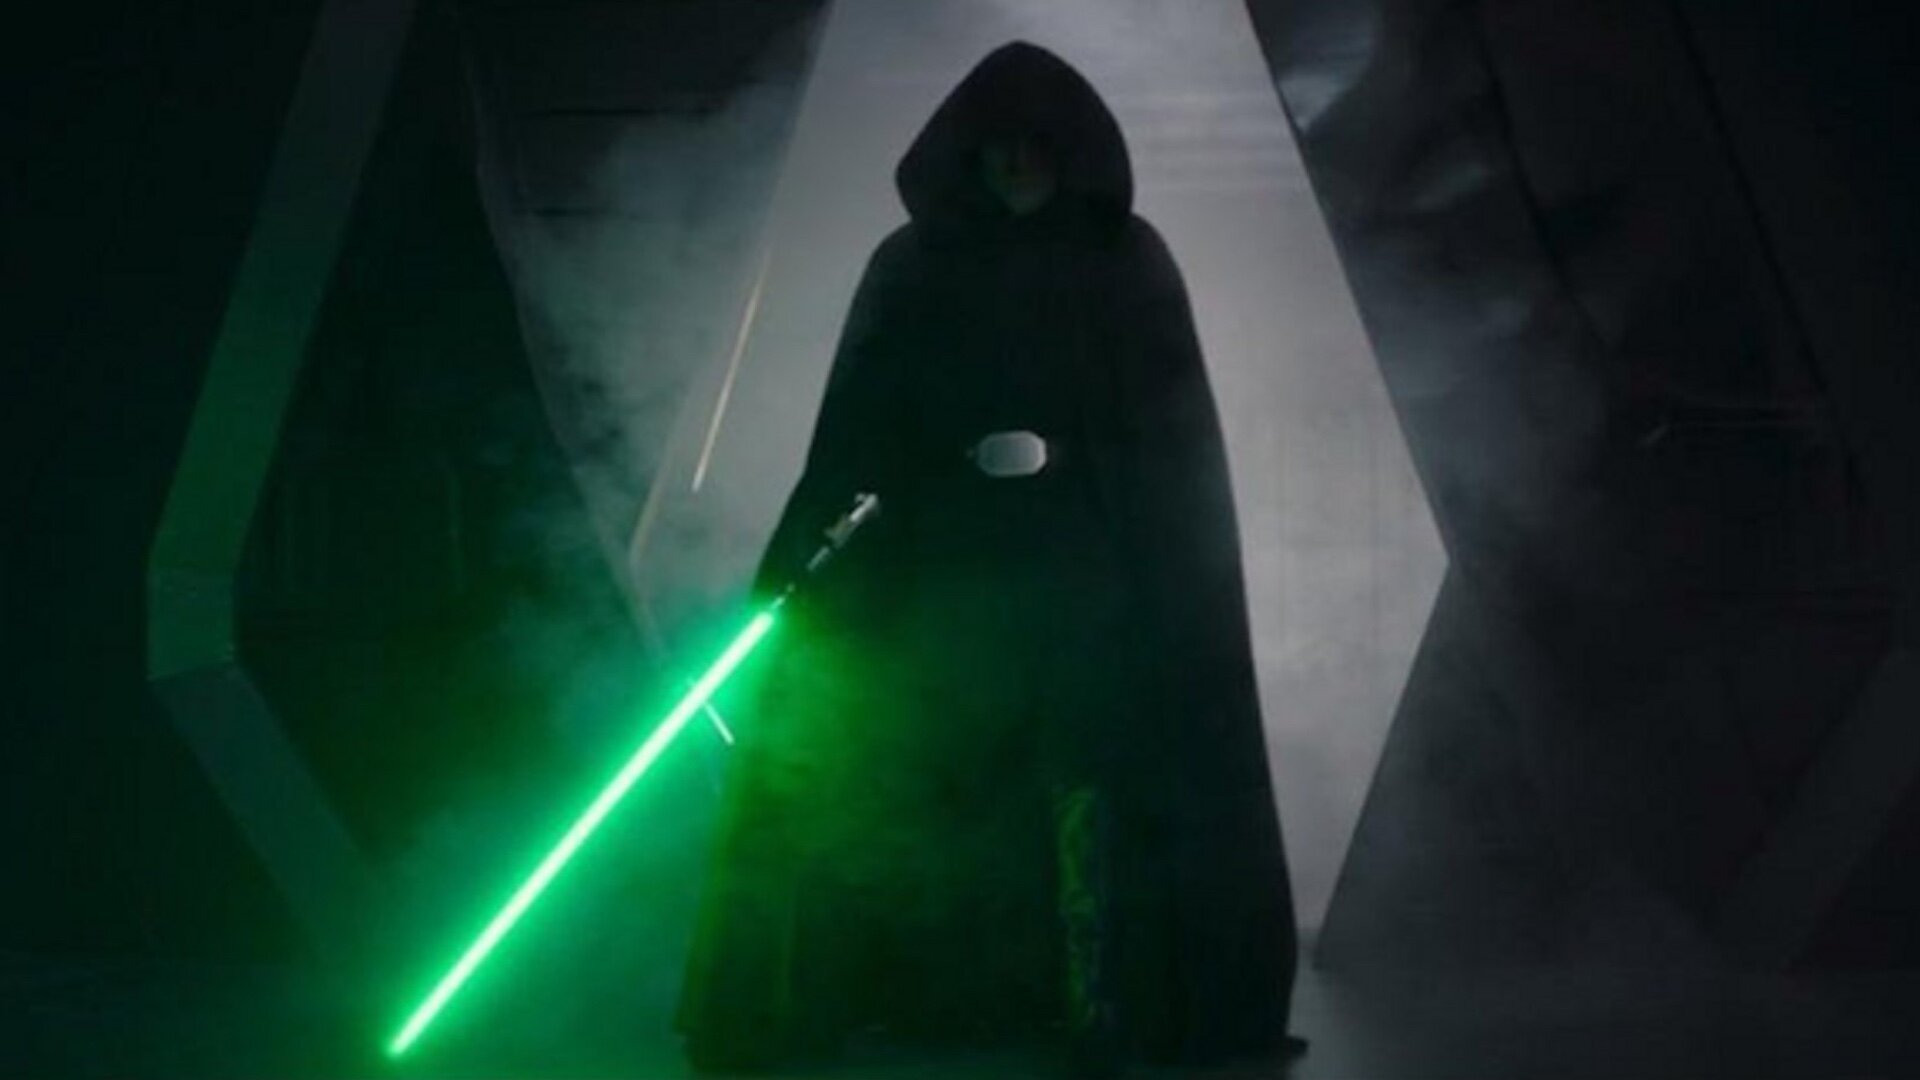 Who could that black-hooded guy be with the green lightsaber?